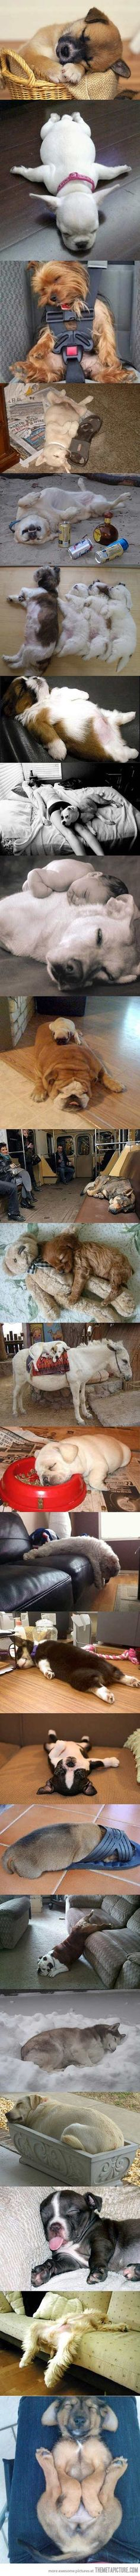 Love the sleepy puppies!